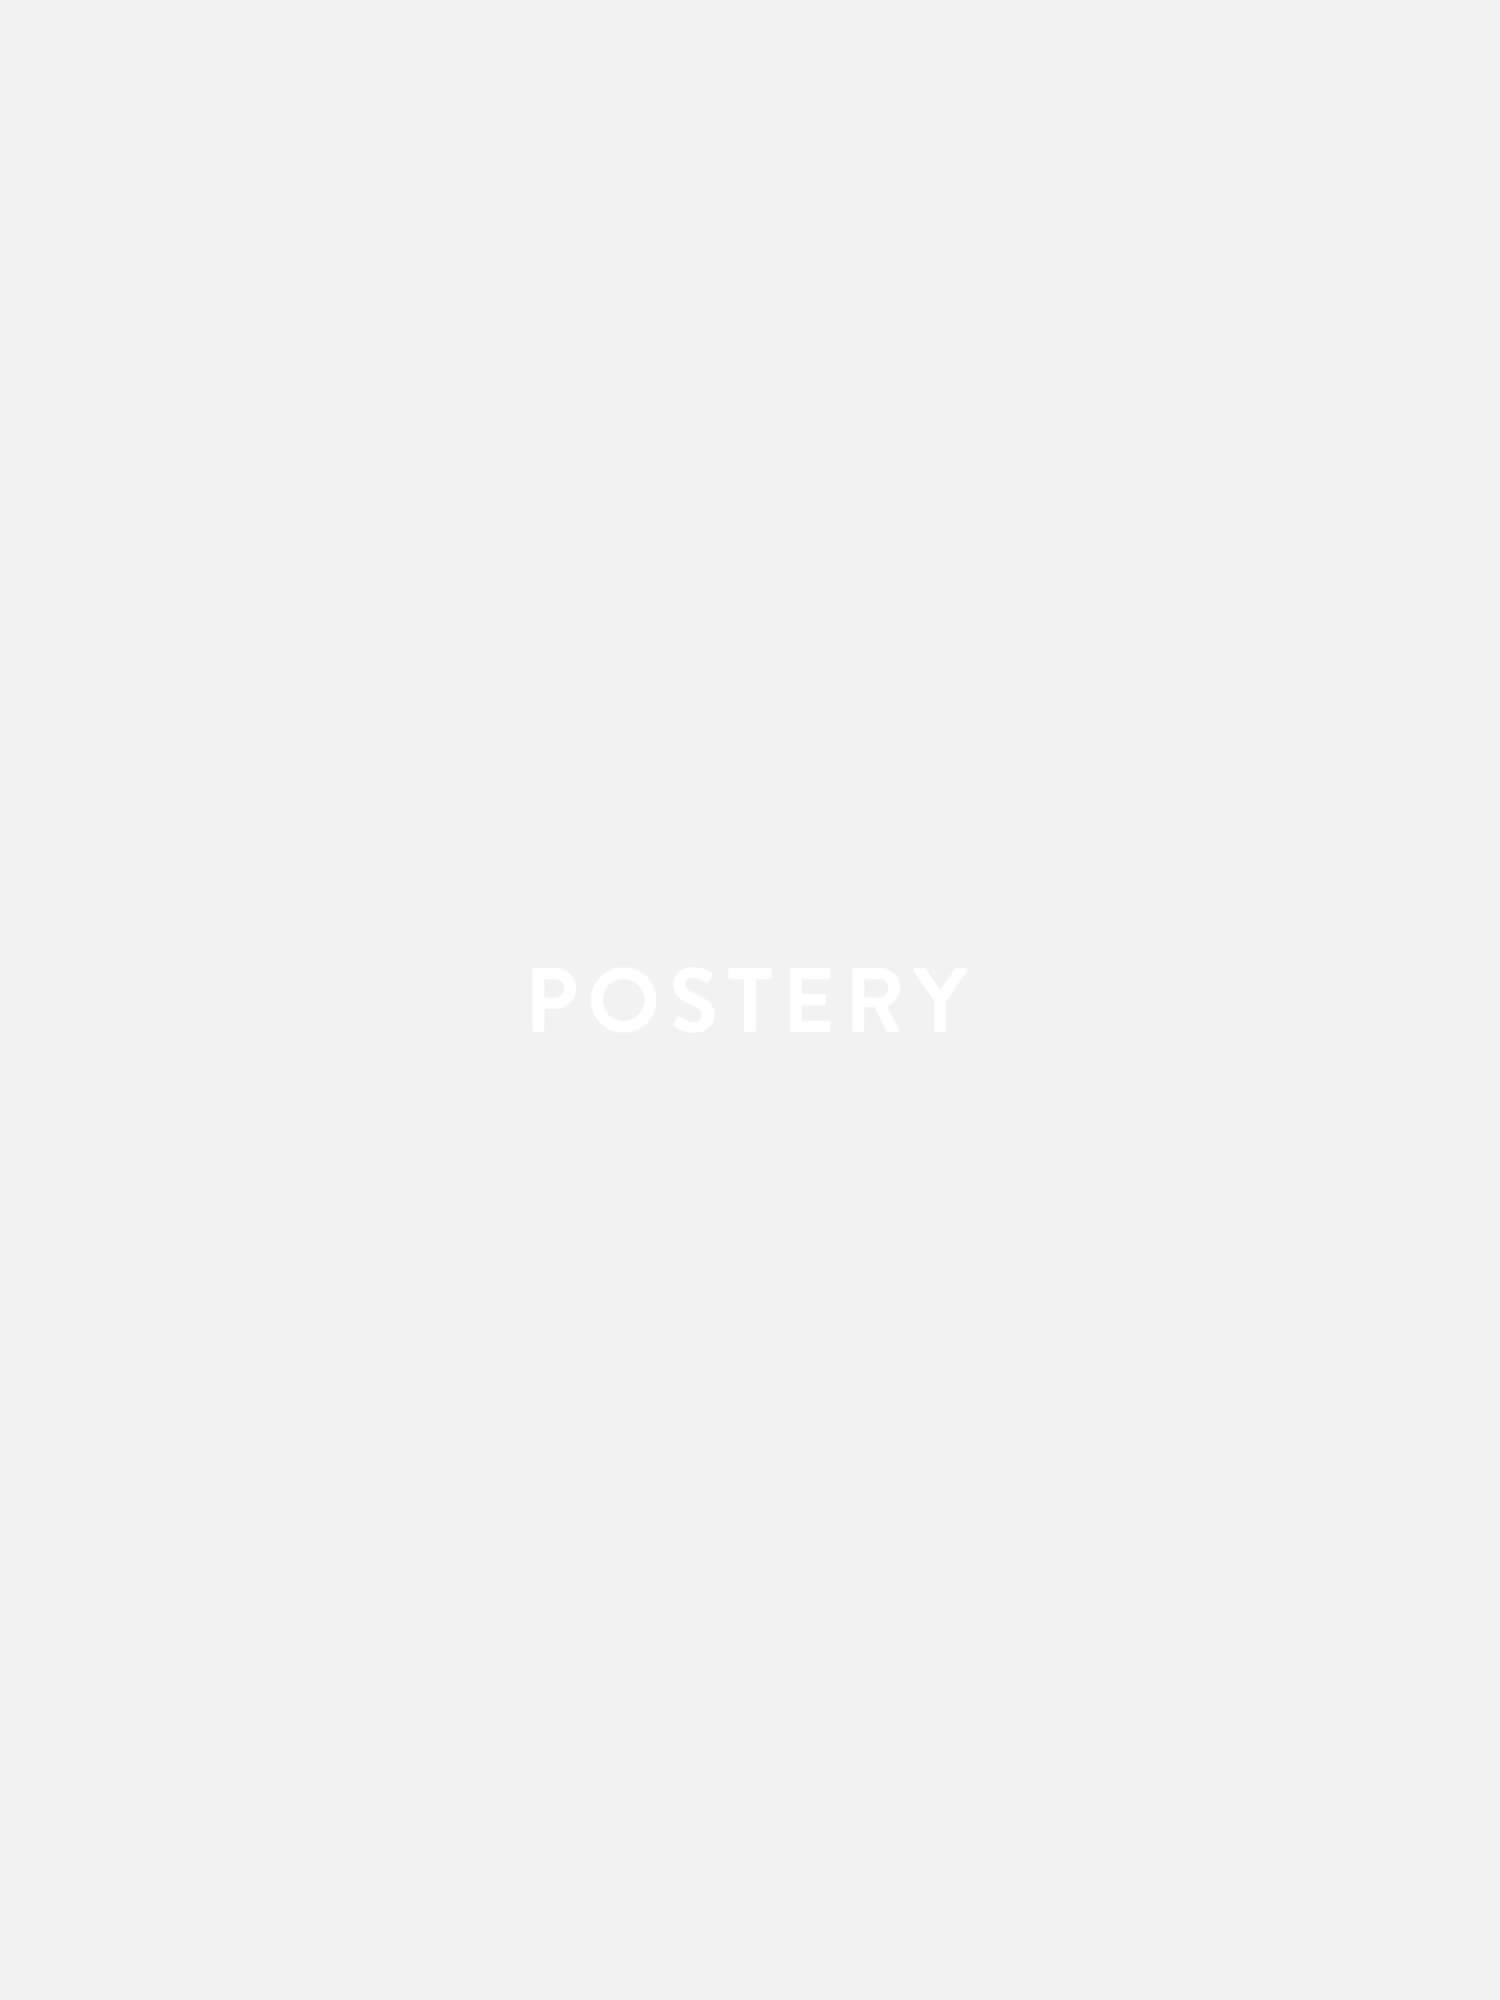 Die with Memories Poster